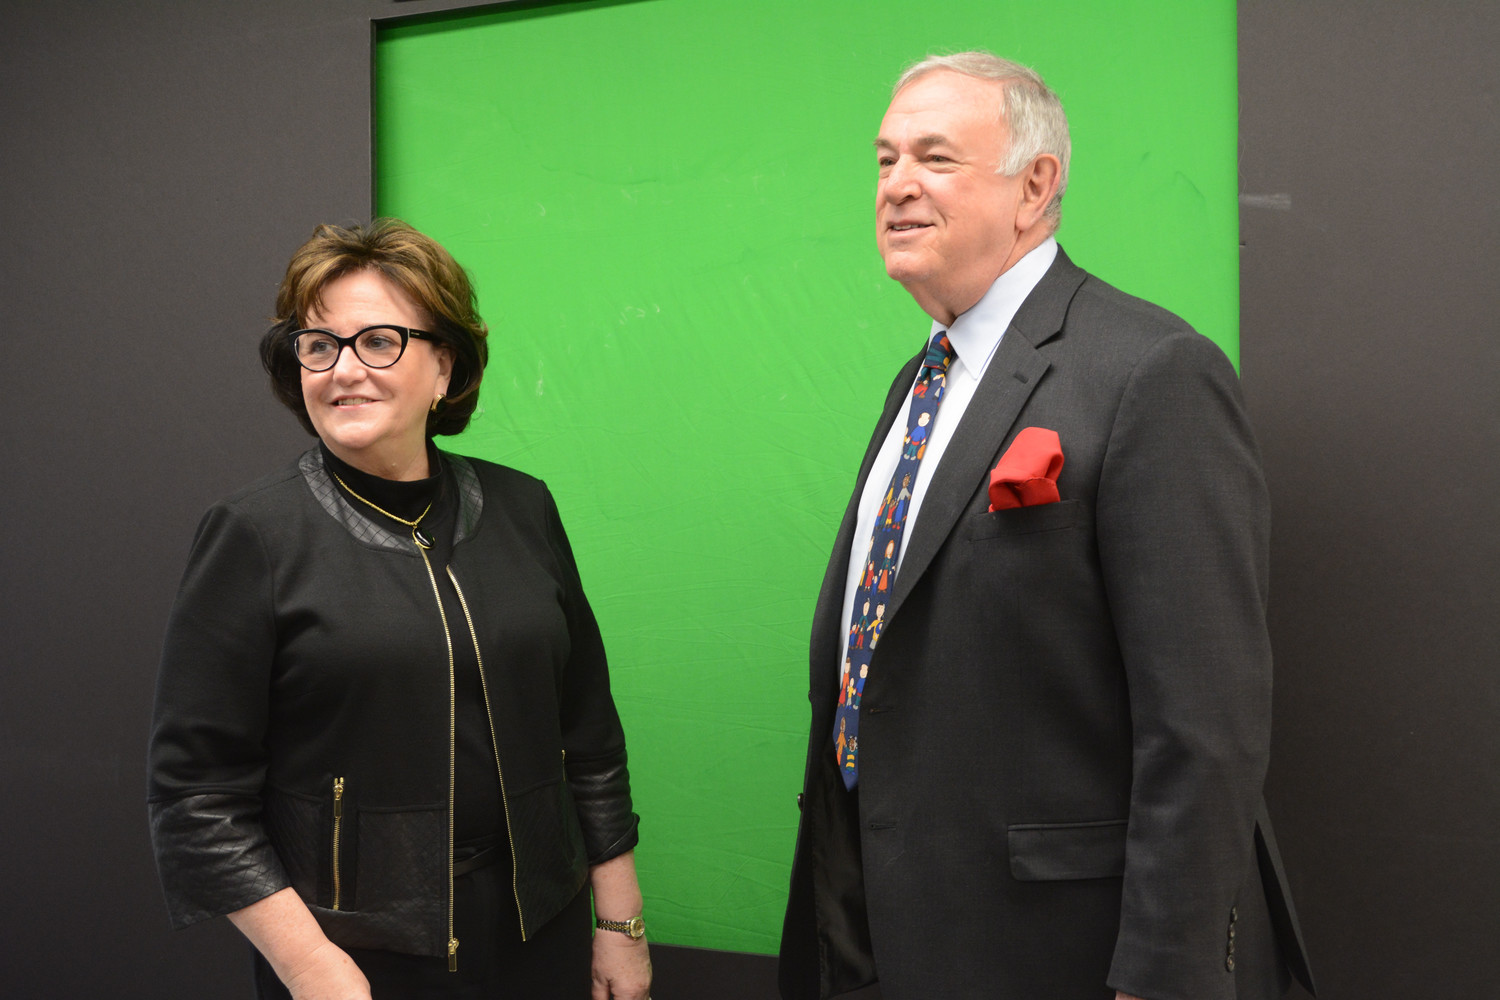 N.Y. State Education Commissioner MaryEllen Elia and Board of regents member Roger Tilles. Elia was encouraged by the 1 percent decline in opt-outs in this year's Regents tests.